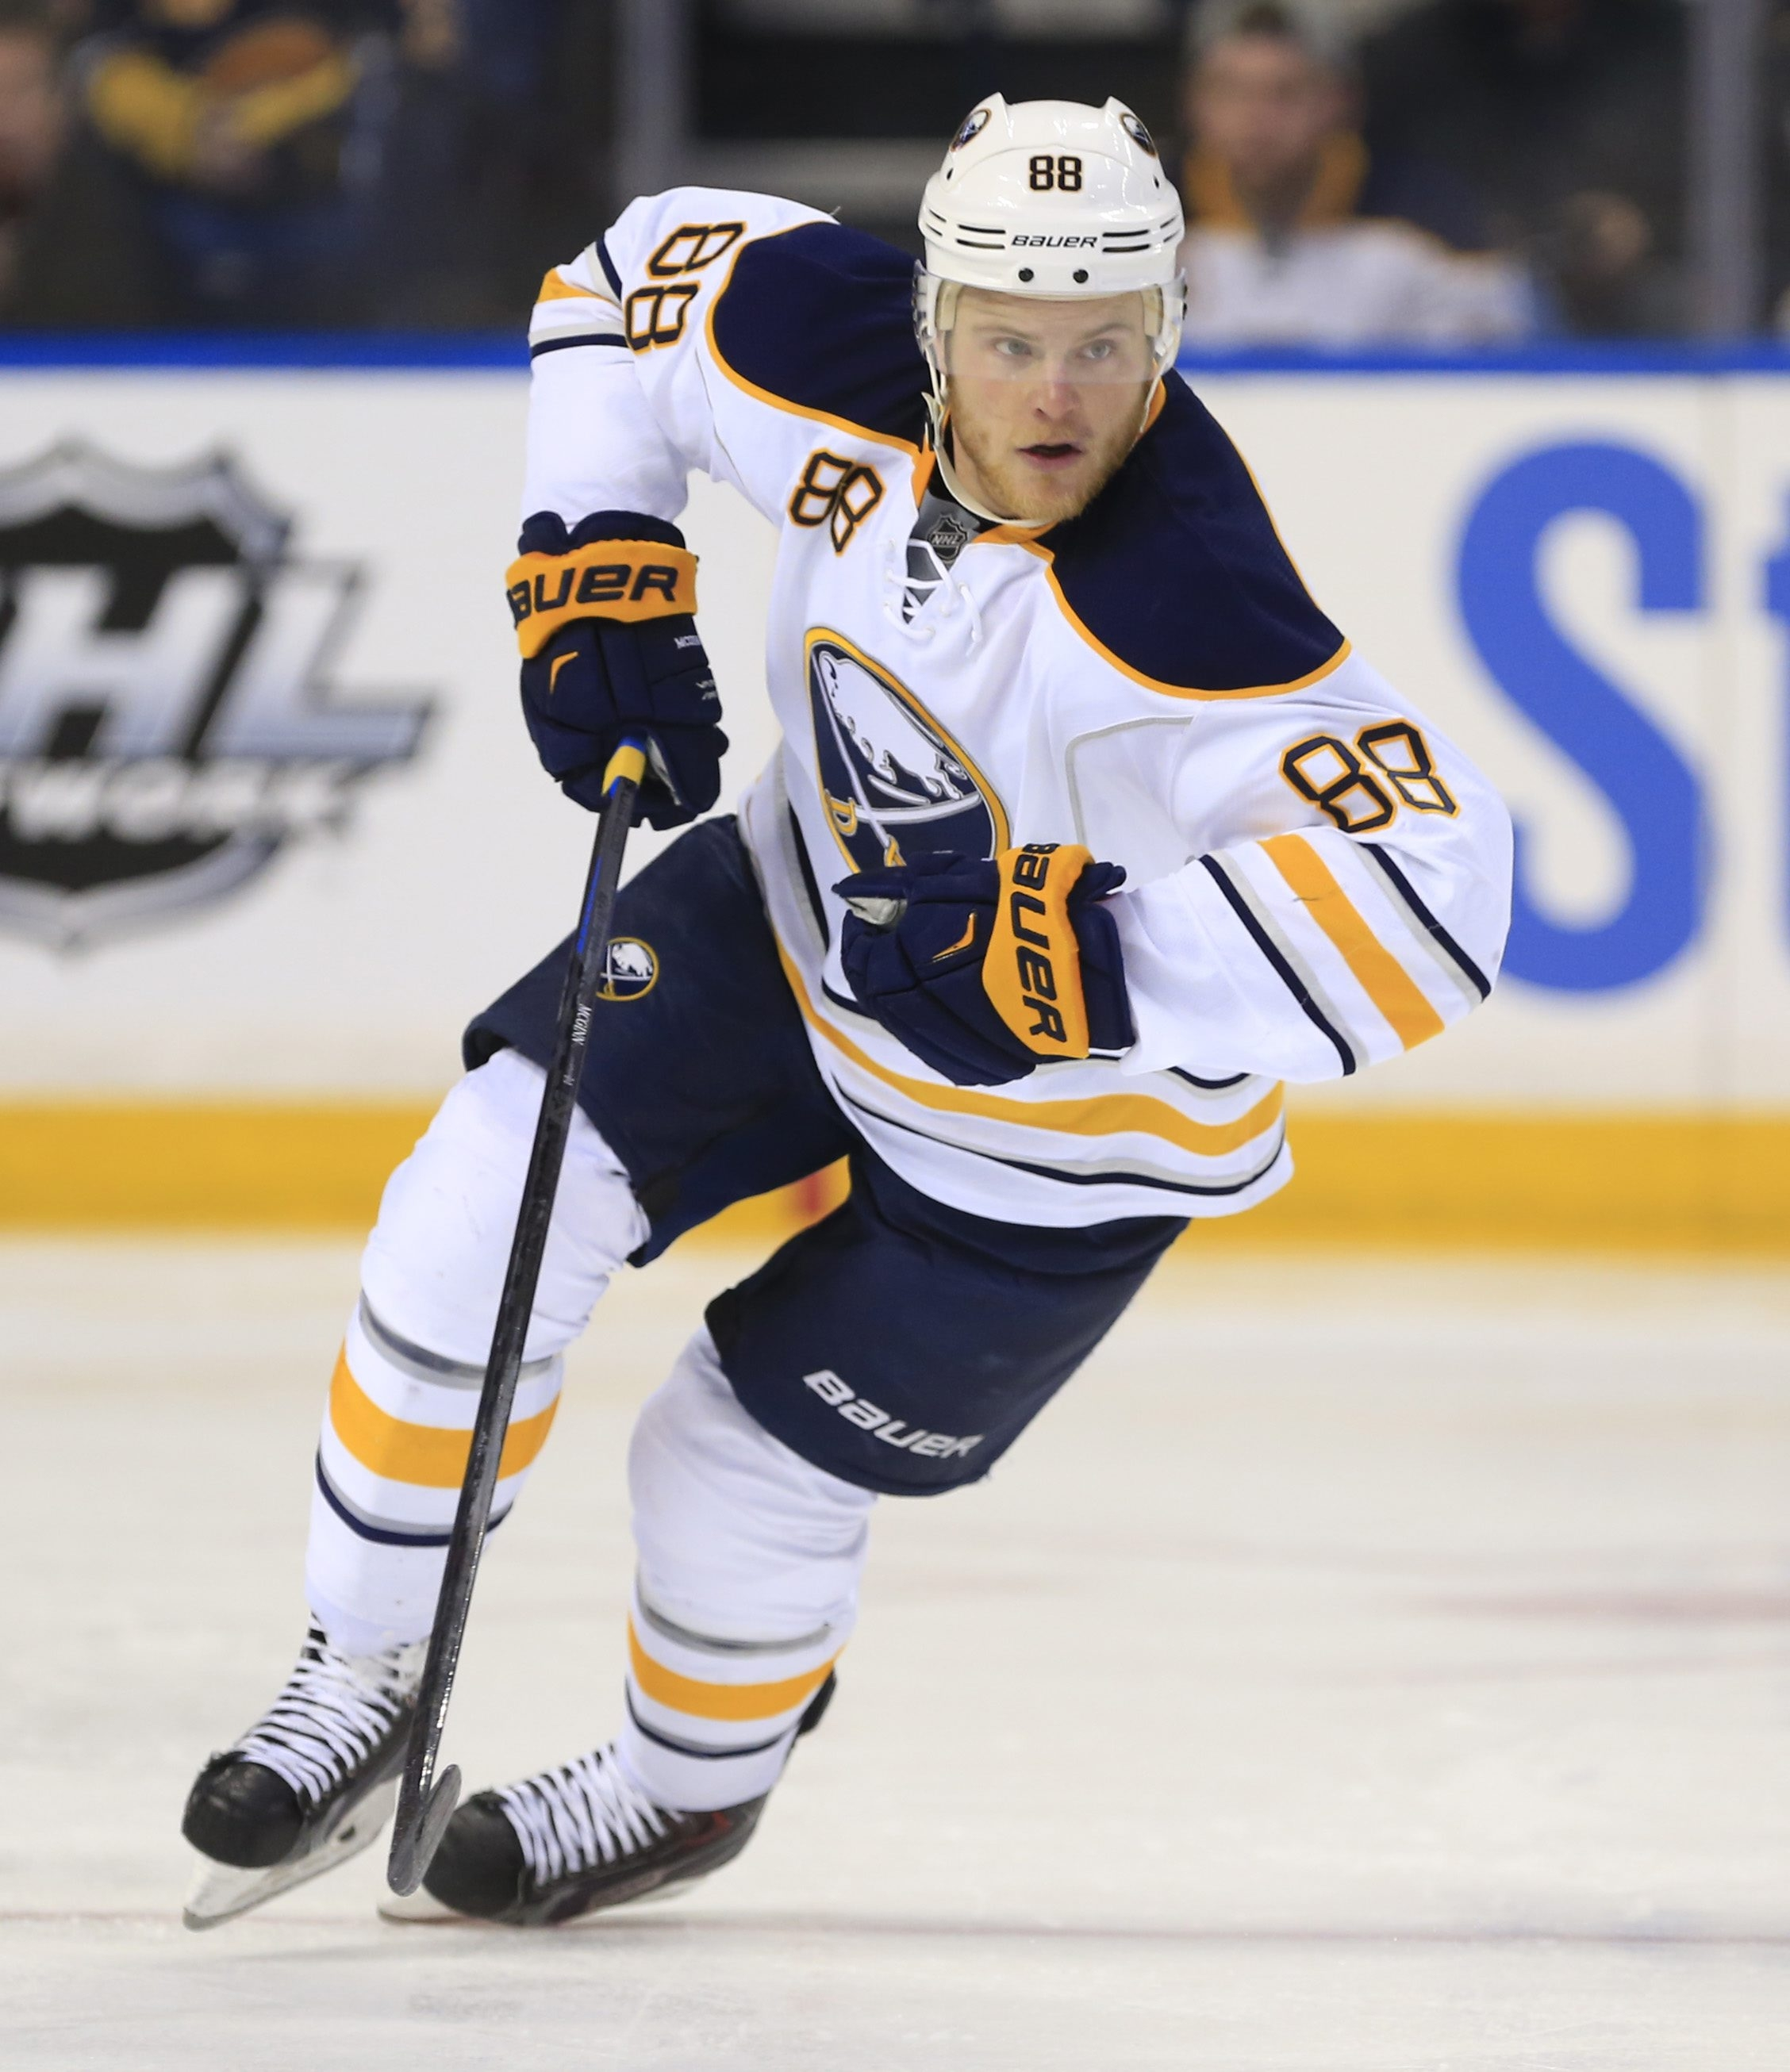 It's unlikely the Sabres will re-sign forward Jamie McGinn before Monday's 3 p.m. deadline.